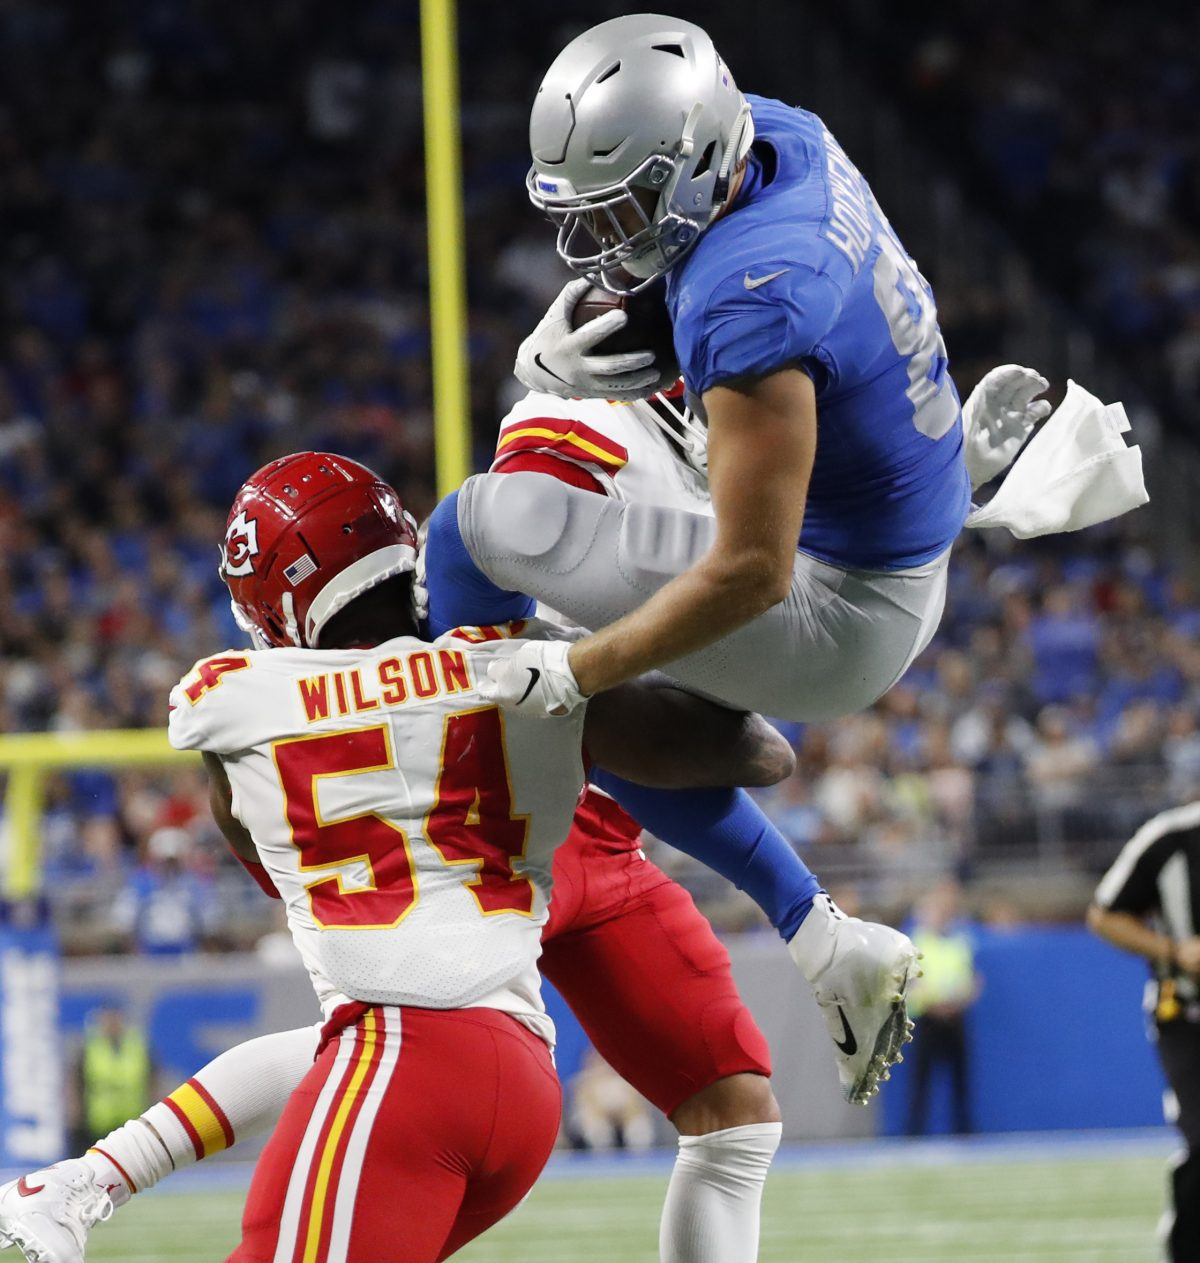 Chiefs score late, stay undefeated with 34-30 win over Lions